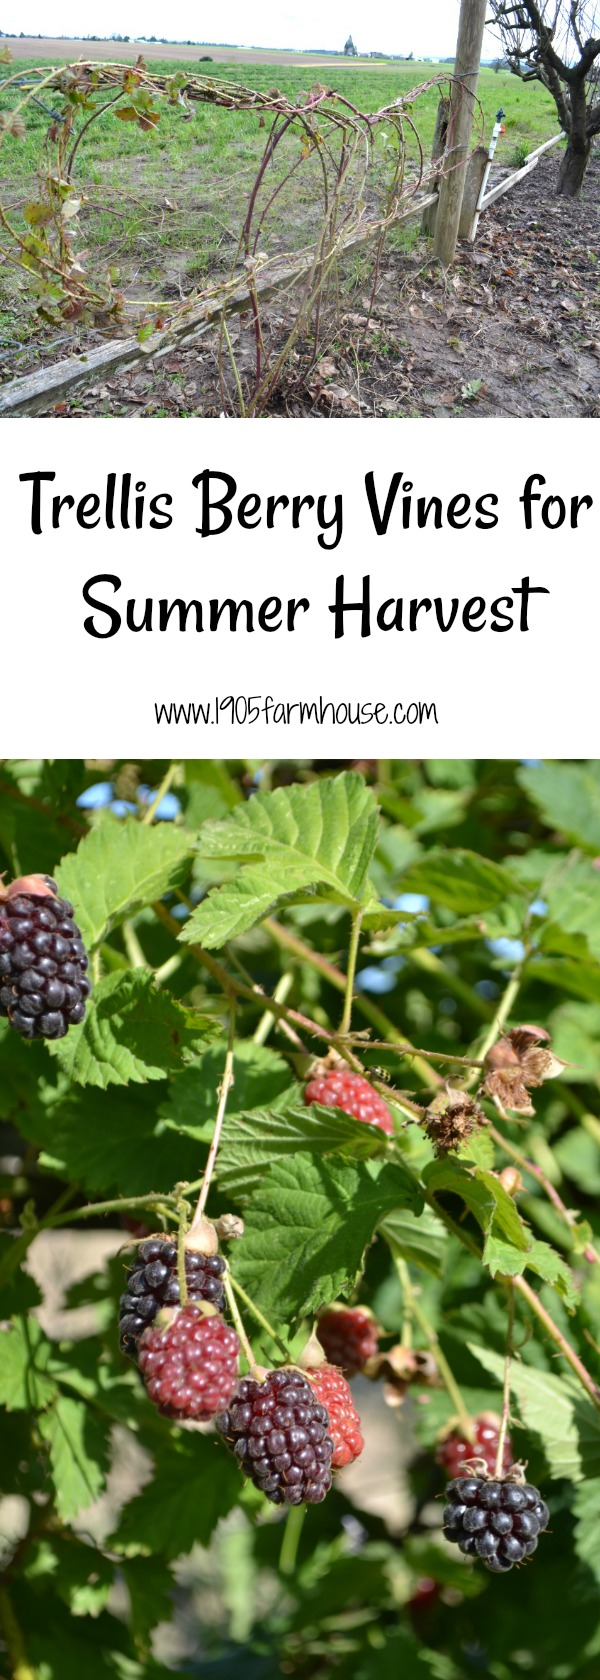 How to trellis berry vines in the spring to make your summer harvest easier